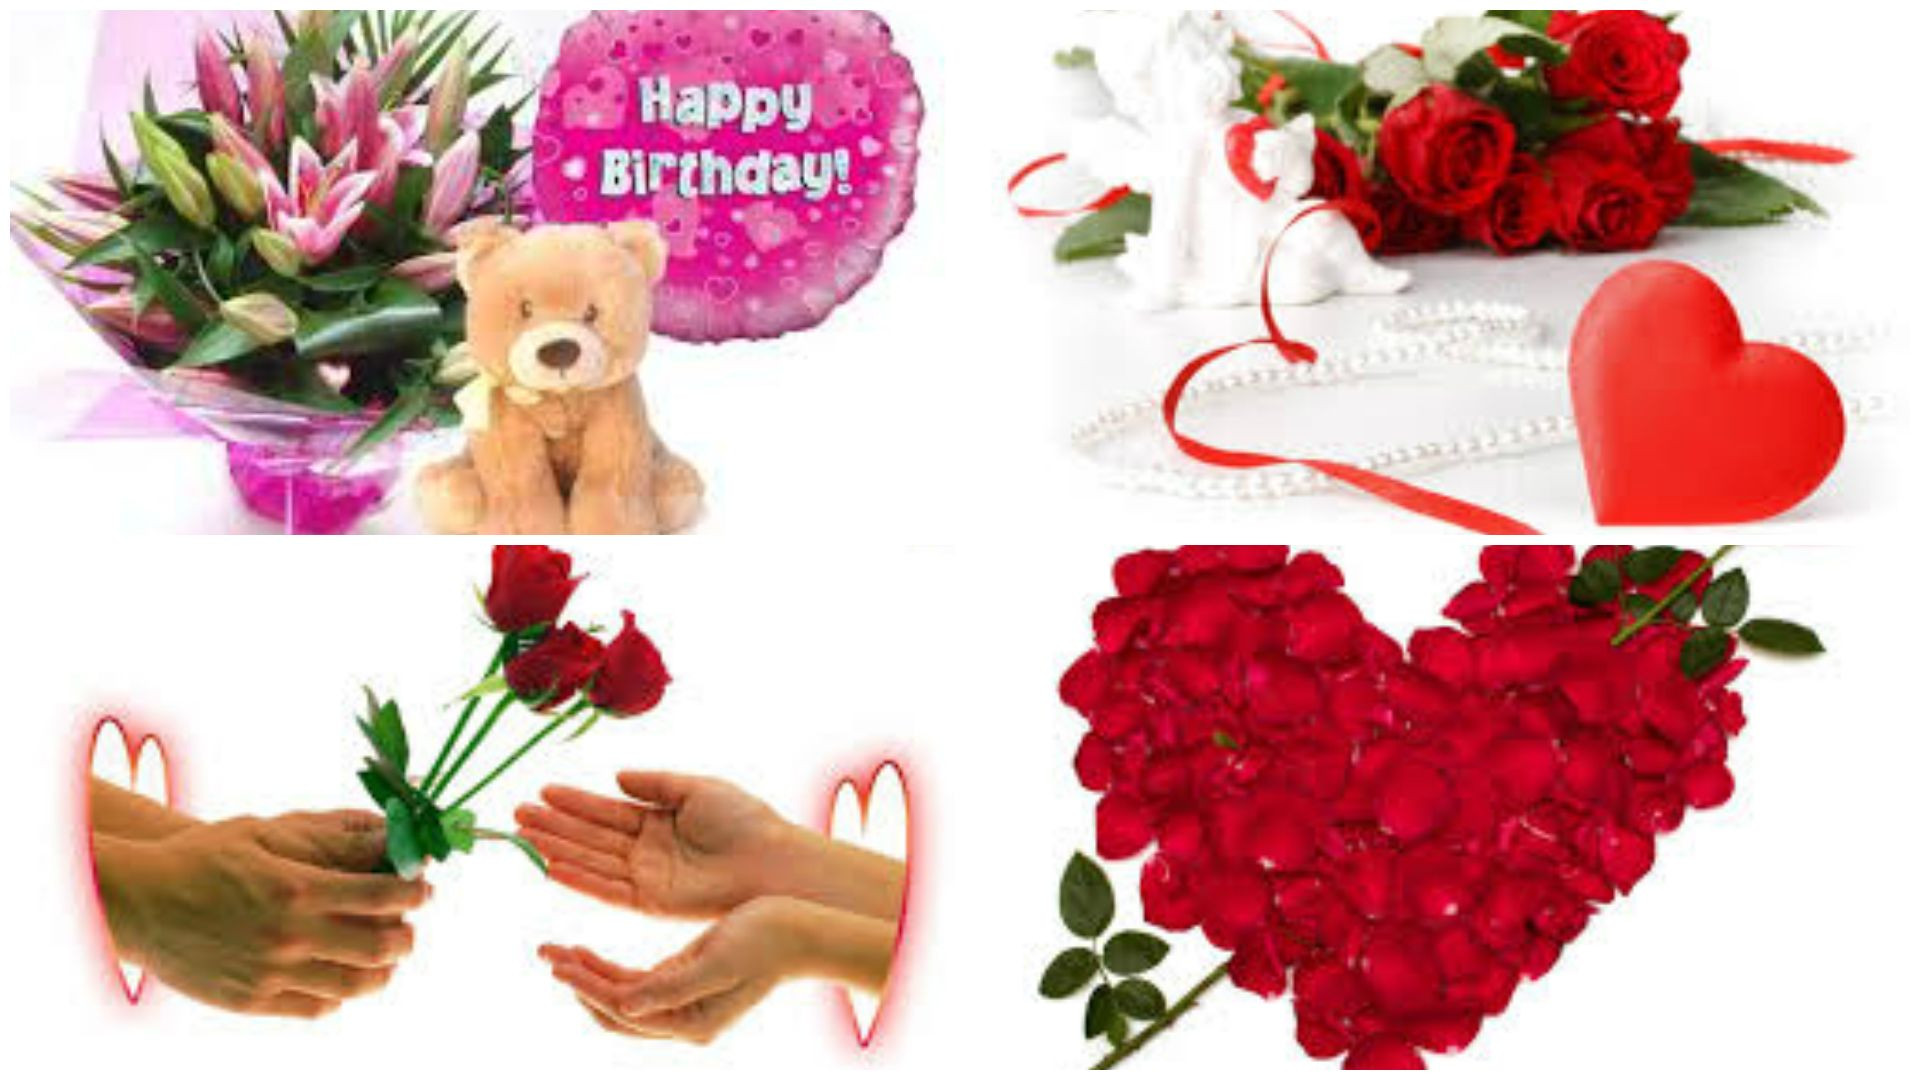 Filipinas Gifts Flowers Delivery in philippines Filipinas Gifts are premier online Flowers and Gifts shopping site in the Philippines which offers their